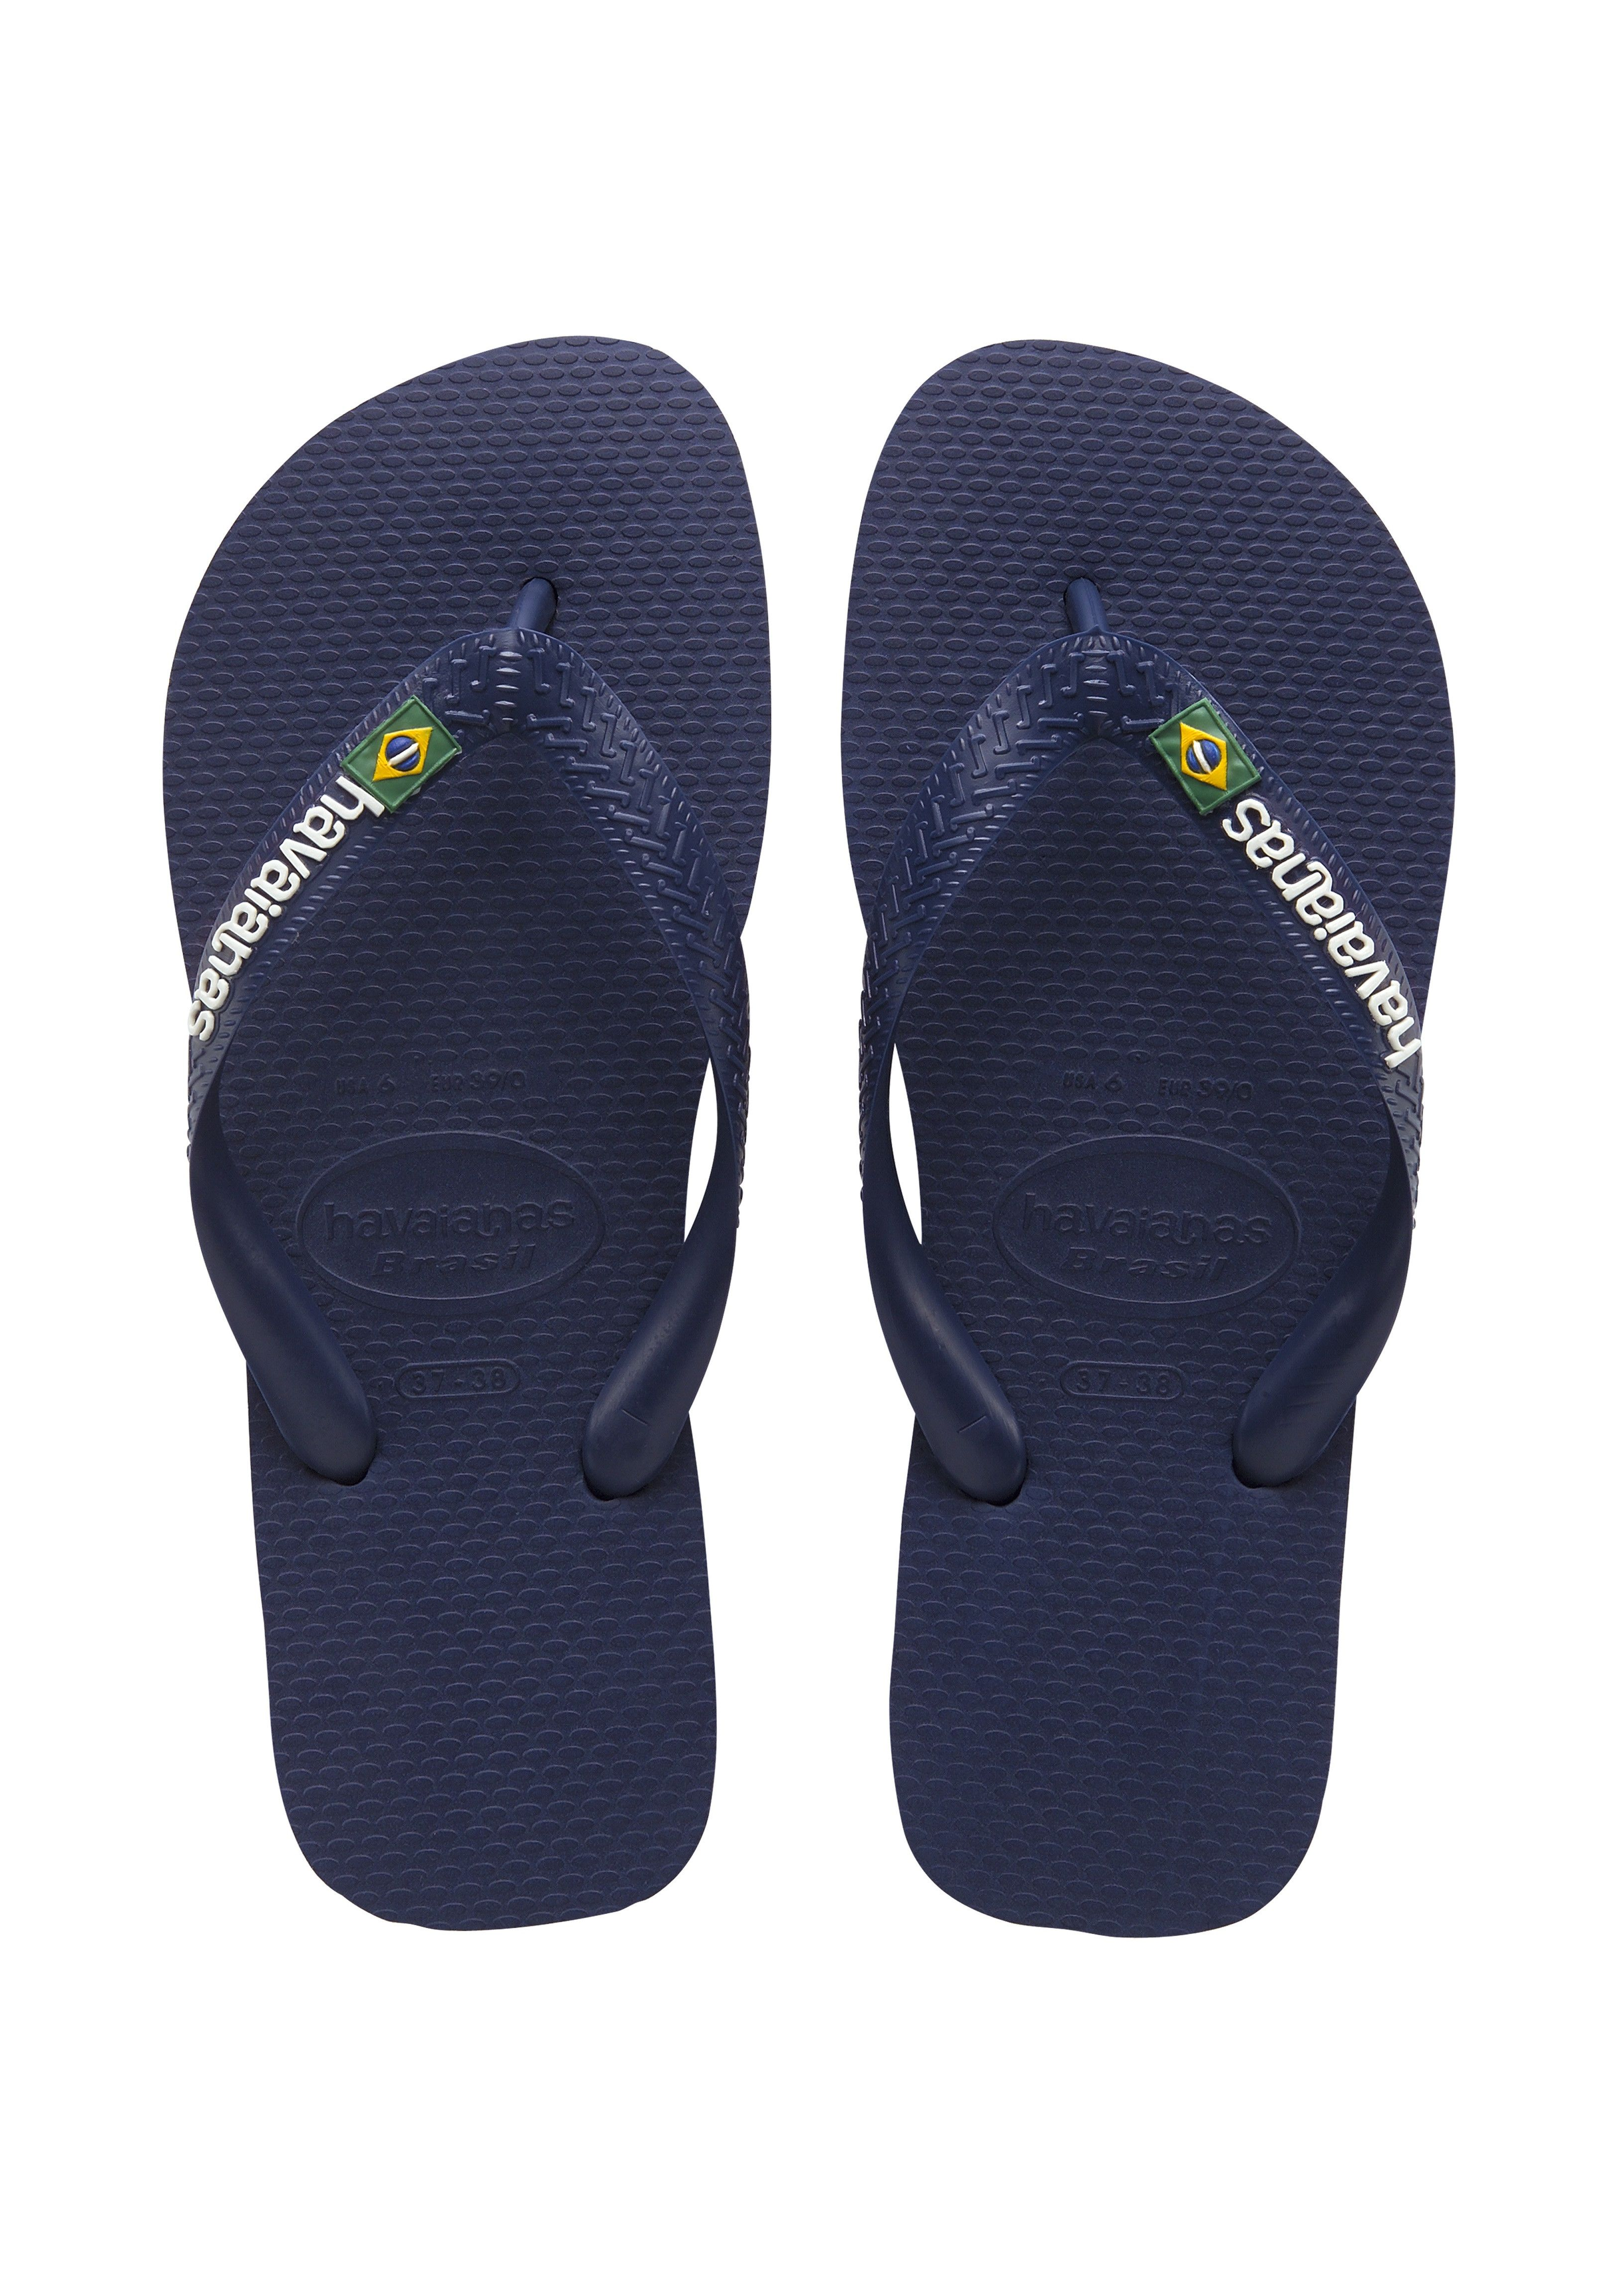 4881104d8dd50c Havaianas Kids Brazil Logo Sandal Navy Blue Price From  ₩27